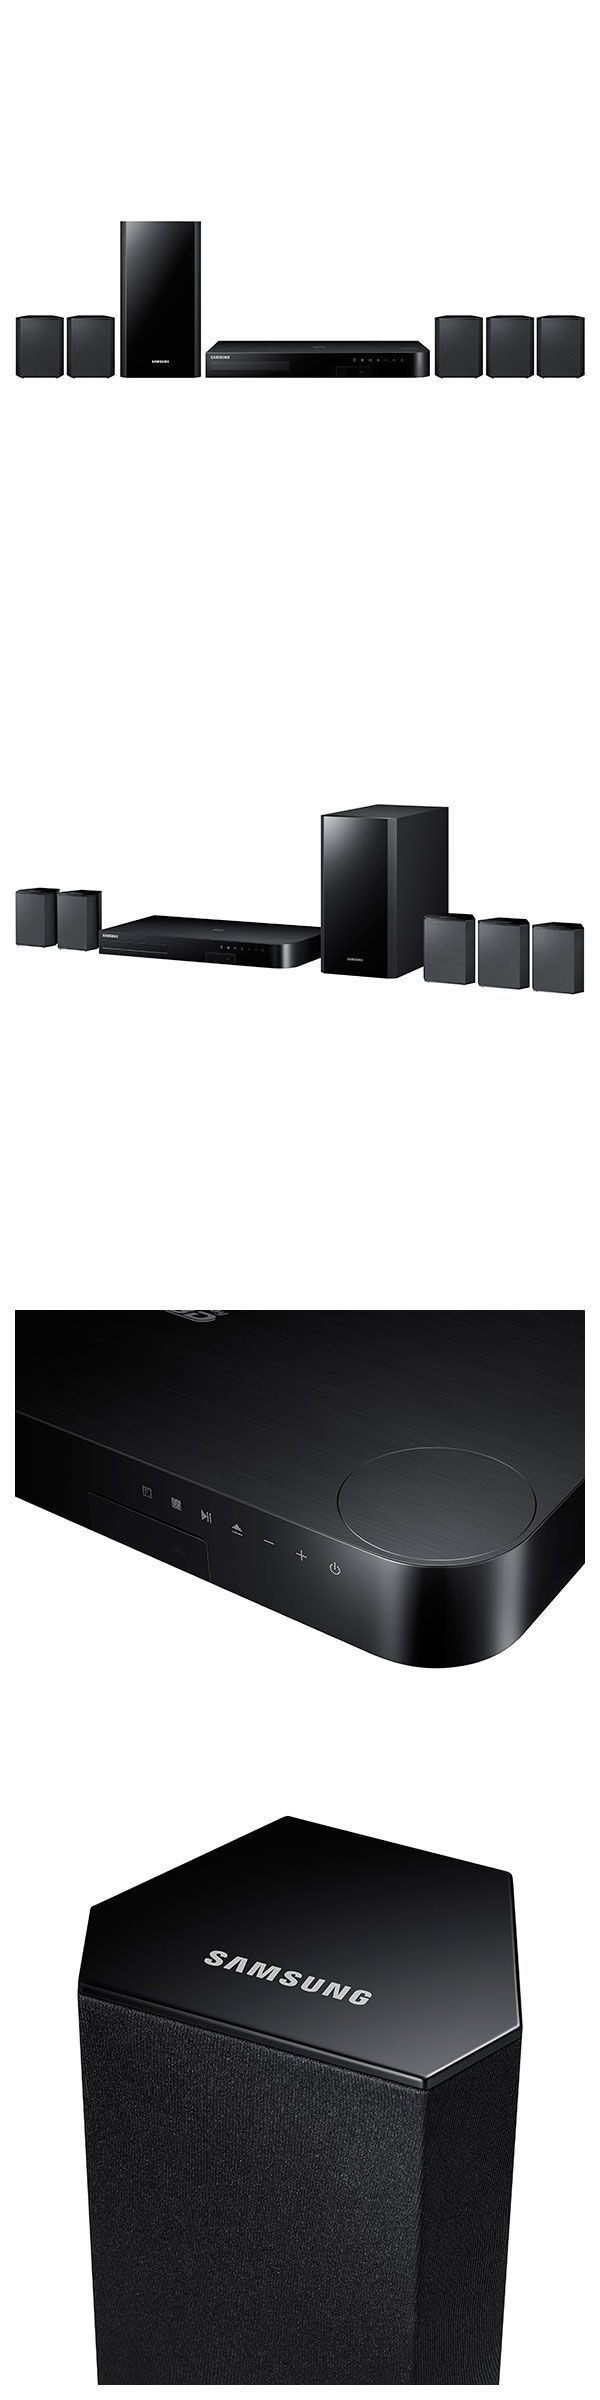 Home Theater Systems: Samsung Htj4100 5.1 Channel 1000-Watt Blu-Ray Home Theater System - Ht-J4100/Za BUY IT NOW ONLY: $213.33